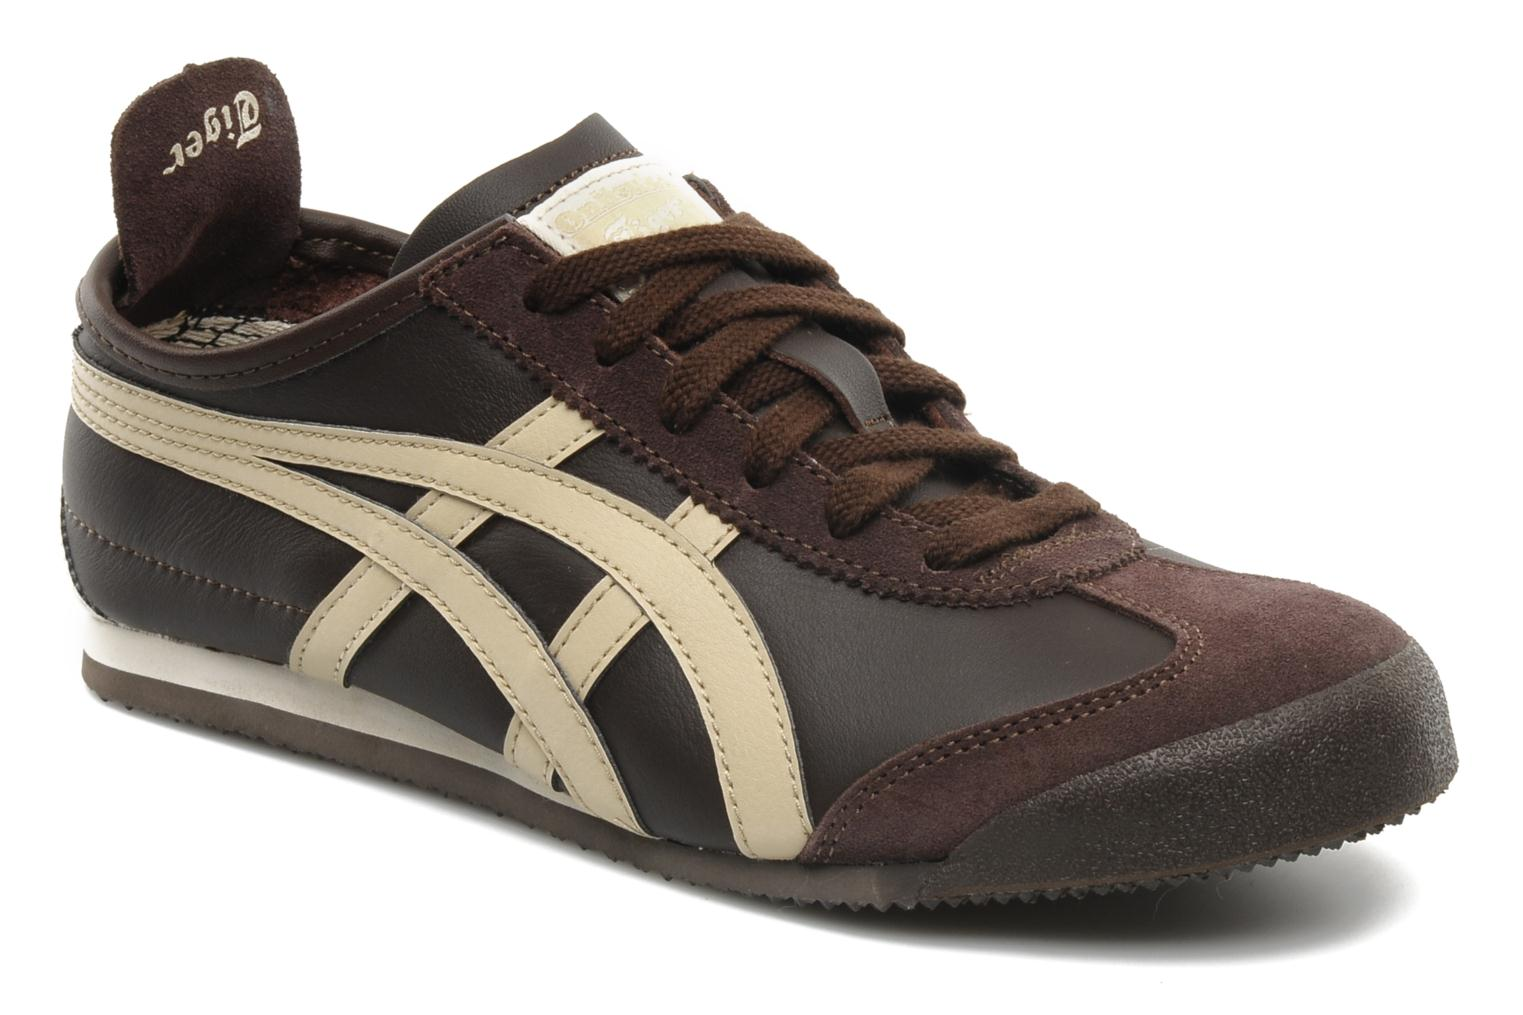 cheaper 235d8 5c75c asics onitsuka tiger mexico 66 brown